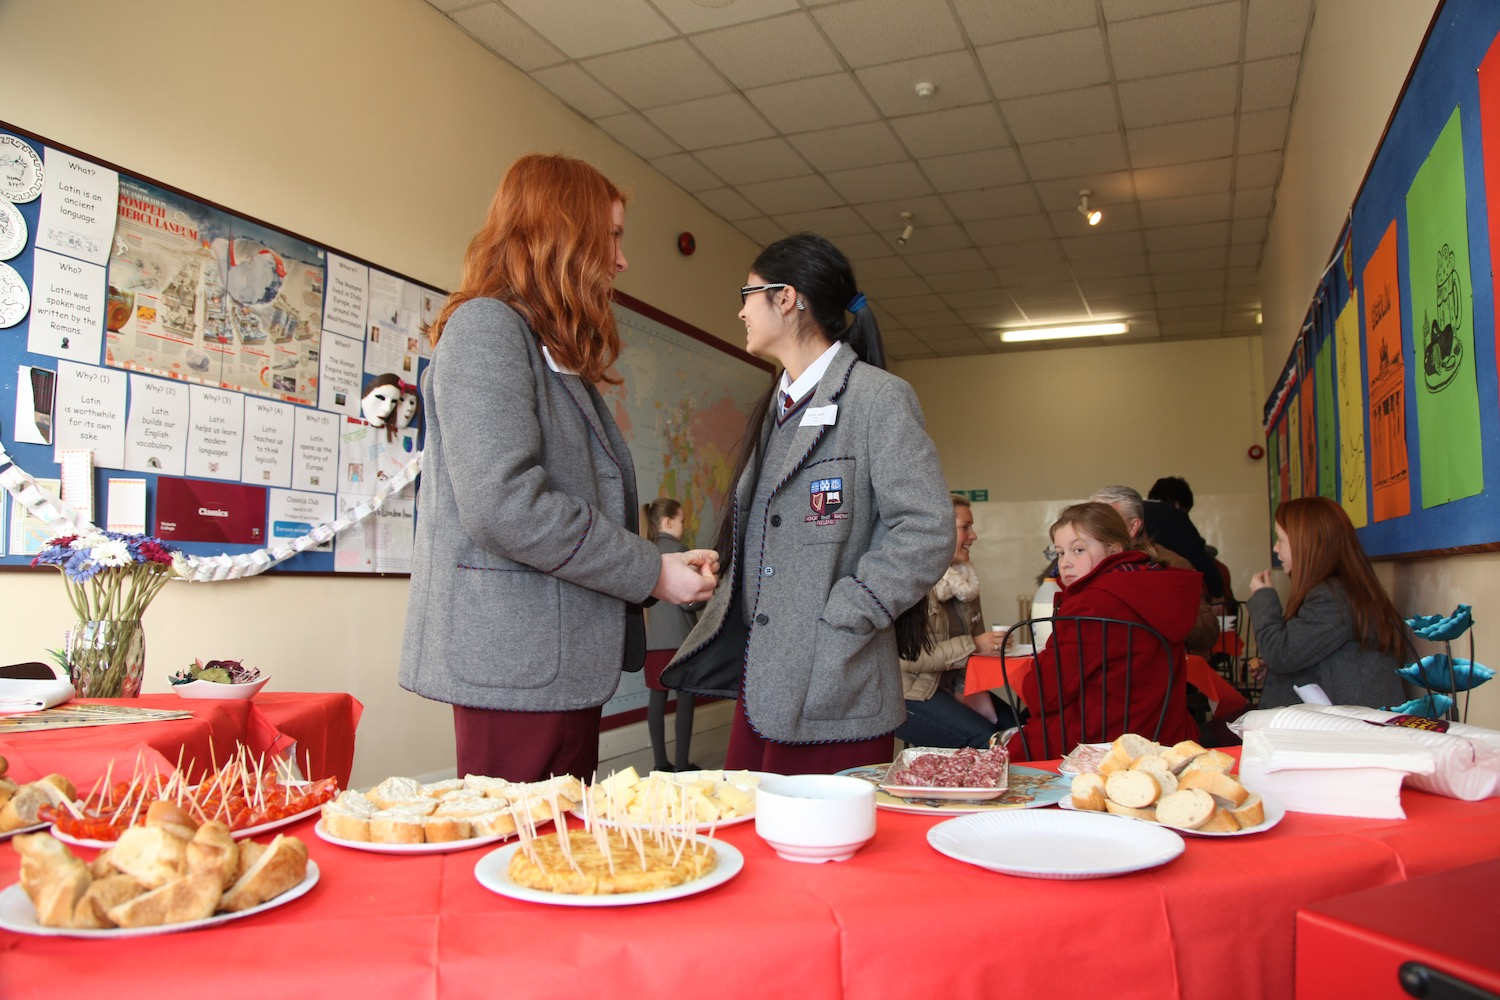 vcb-openday20152-IMG_8617.jpg